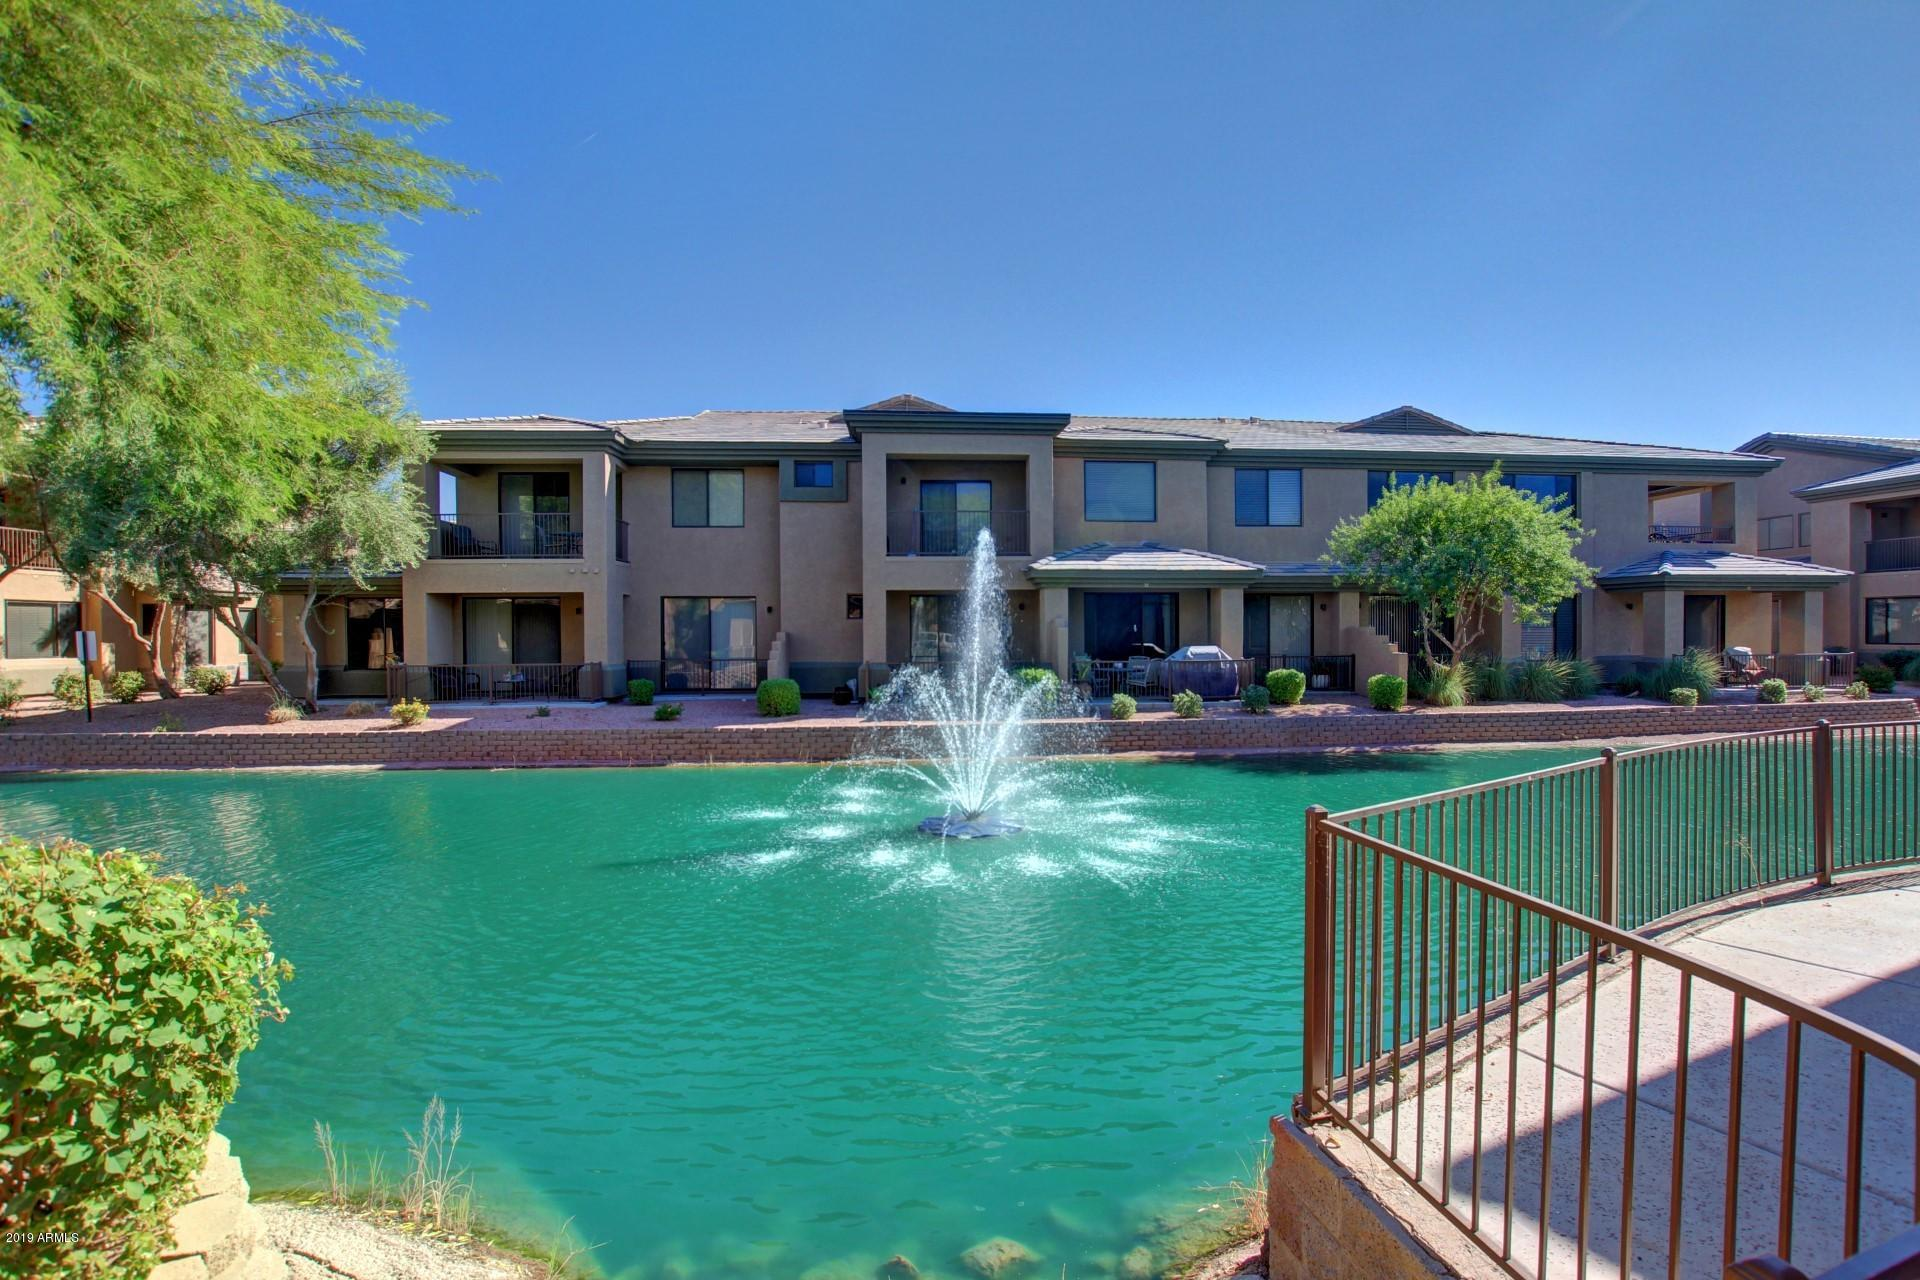 705 W Queen Creek Road, Unit 2194, Chandler AZ 85248 - Photo 2